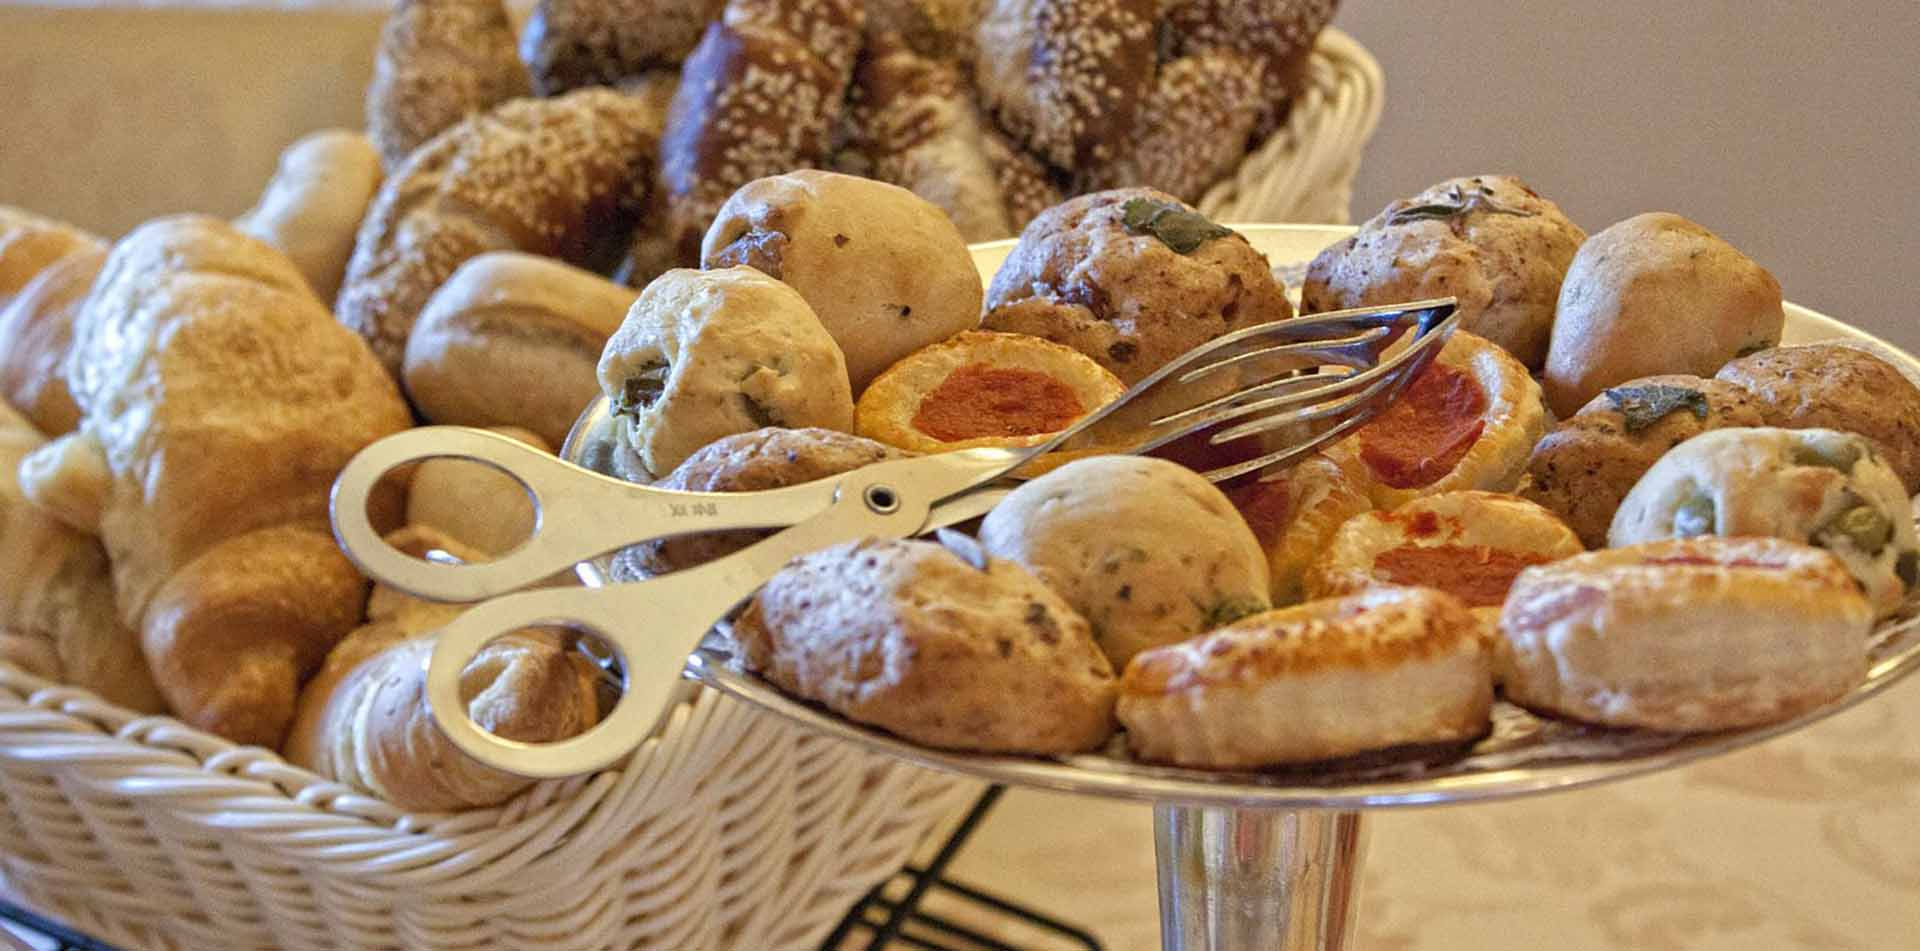 Europe Italy Tuscany freshly baked bread and pastries in basket on display - luxury vacation destinations